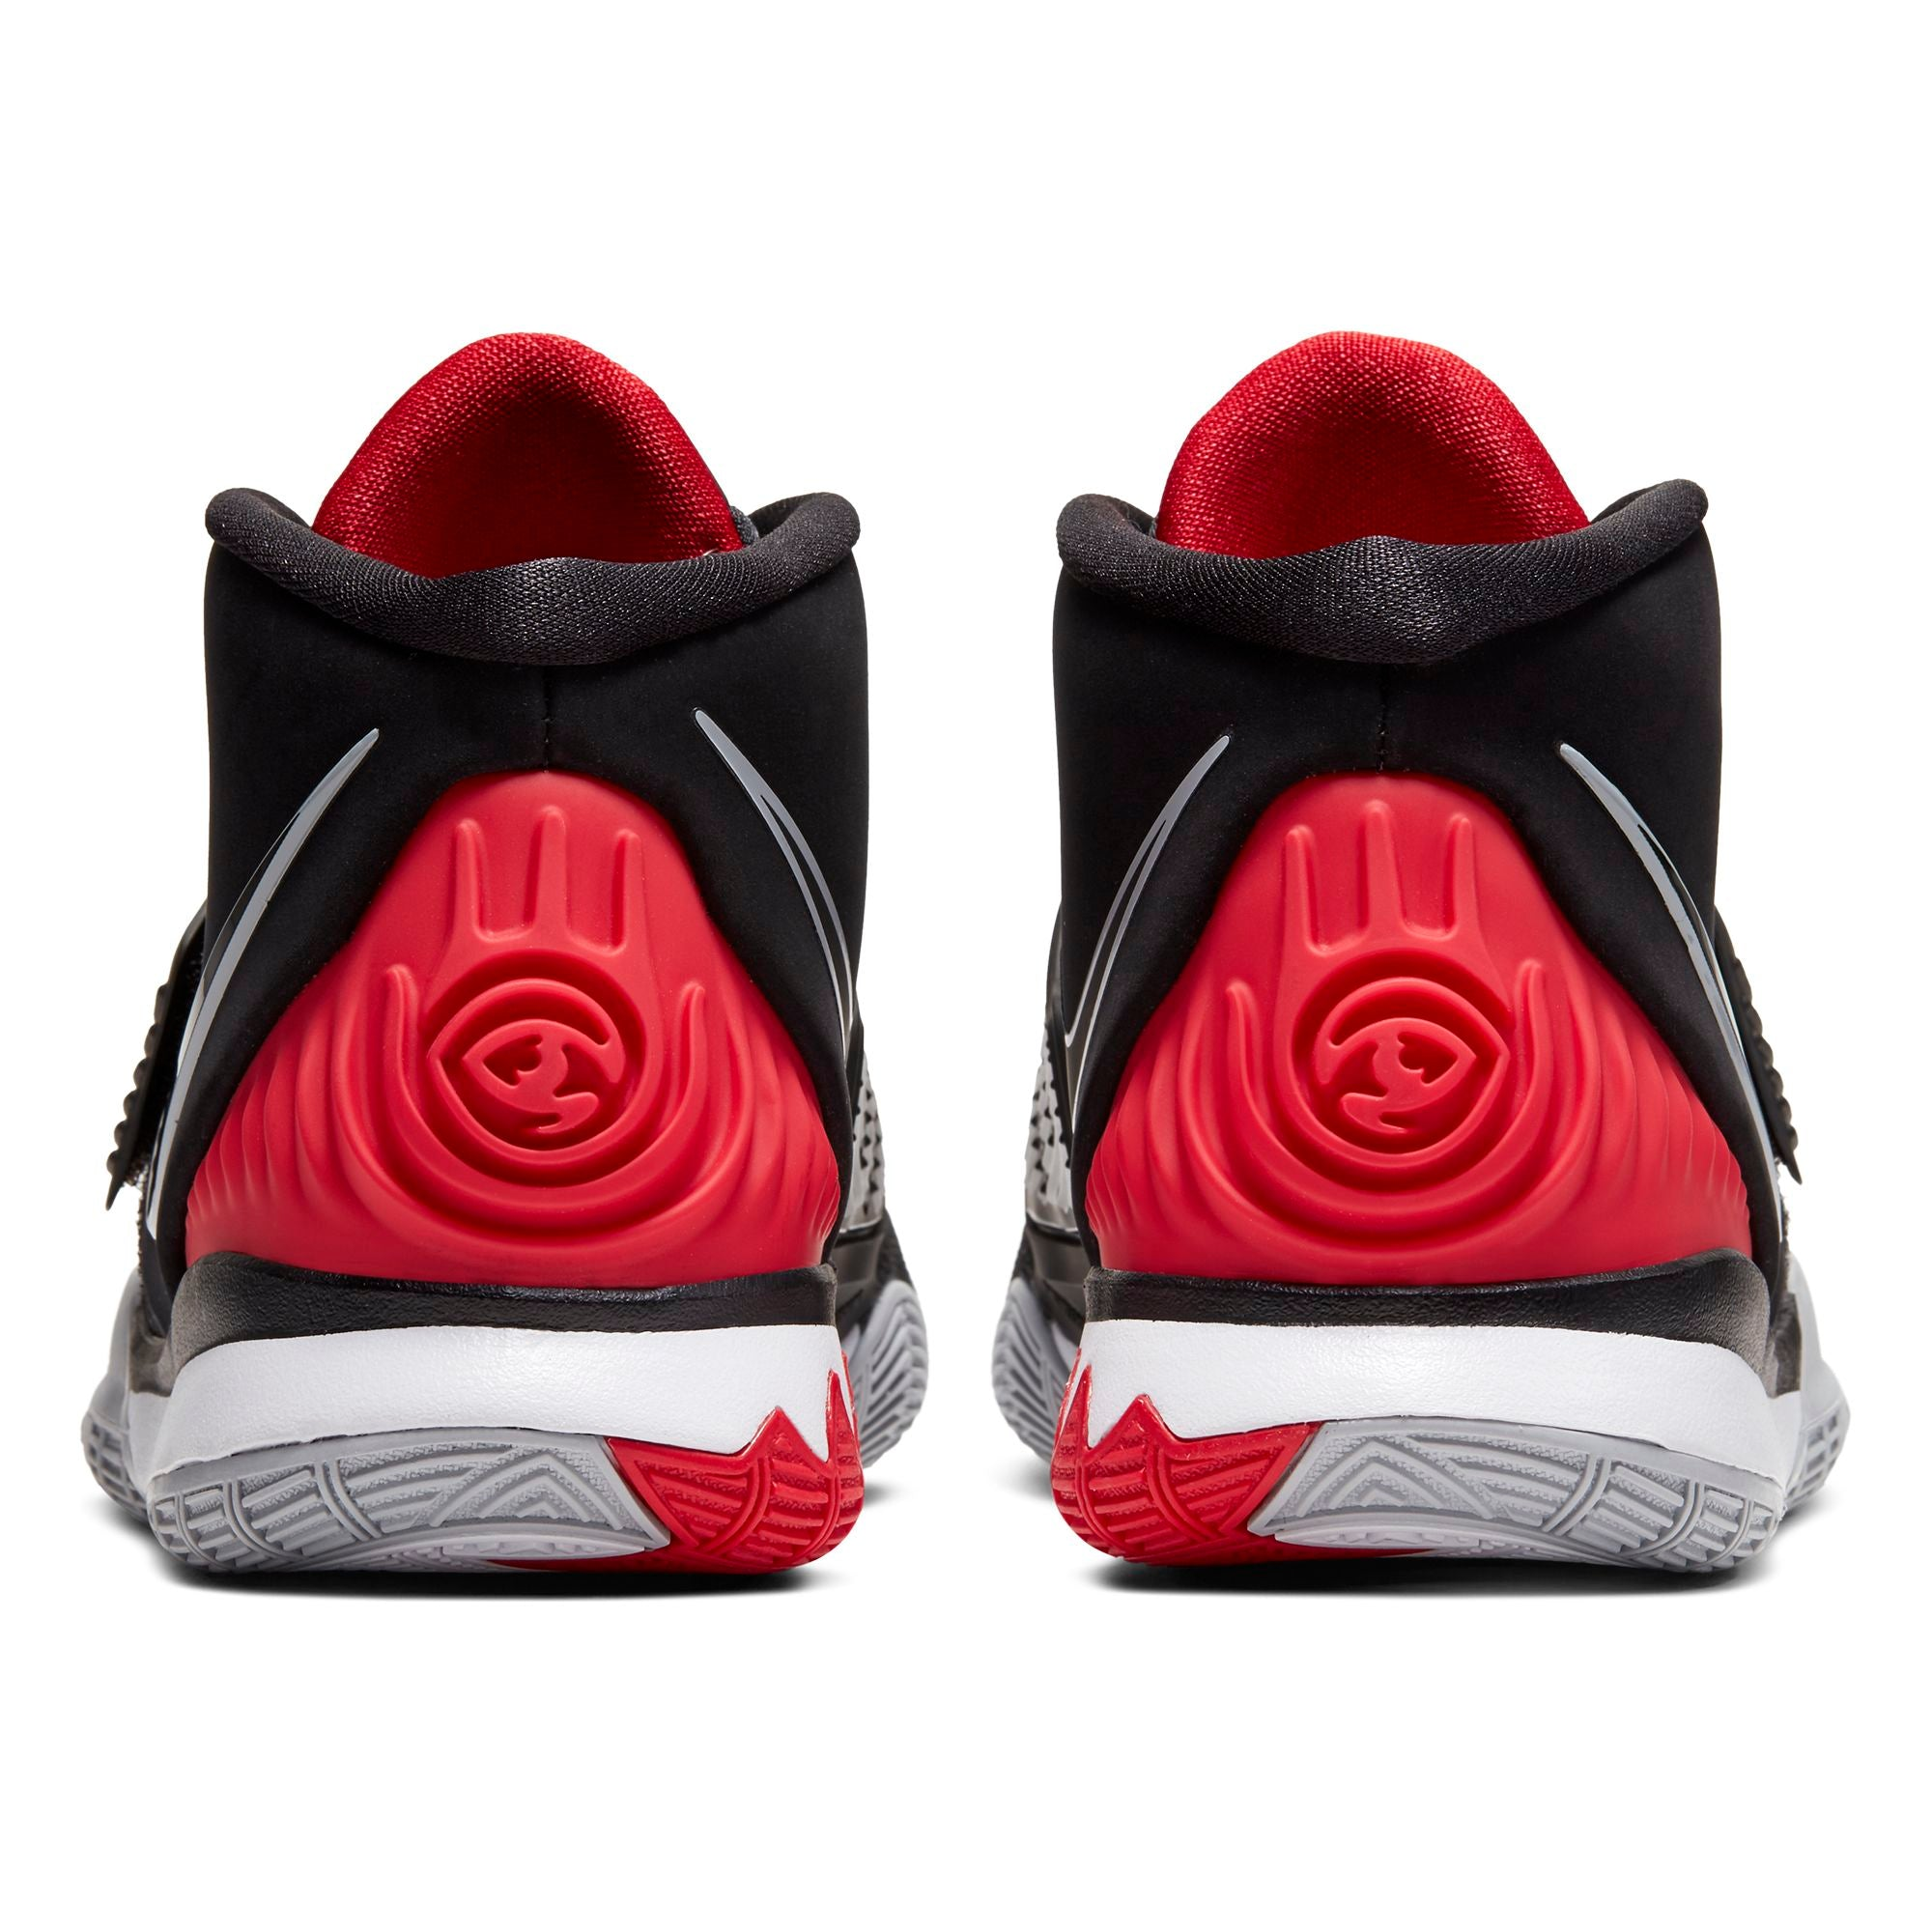 Nike Kids Kyrie 6 Basketball Boot/Shoe - Black/University Red/White